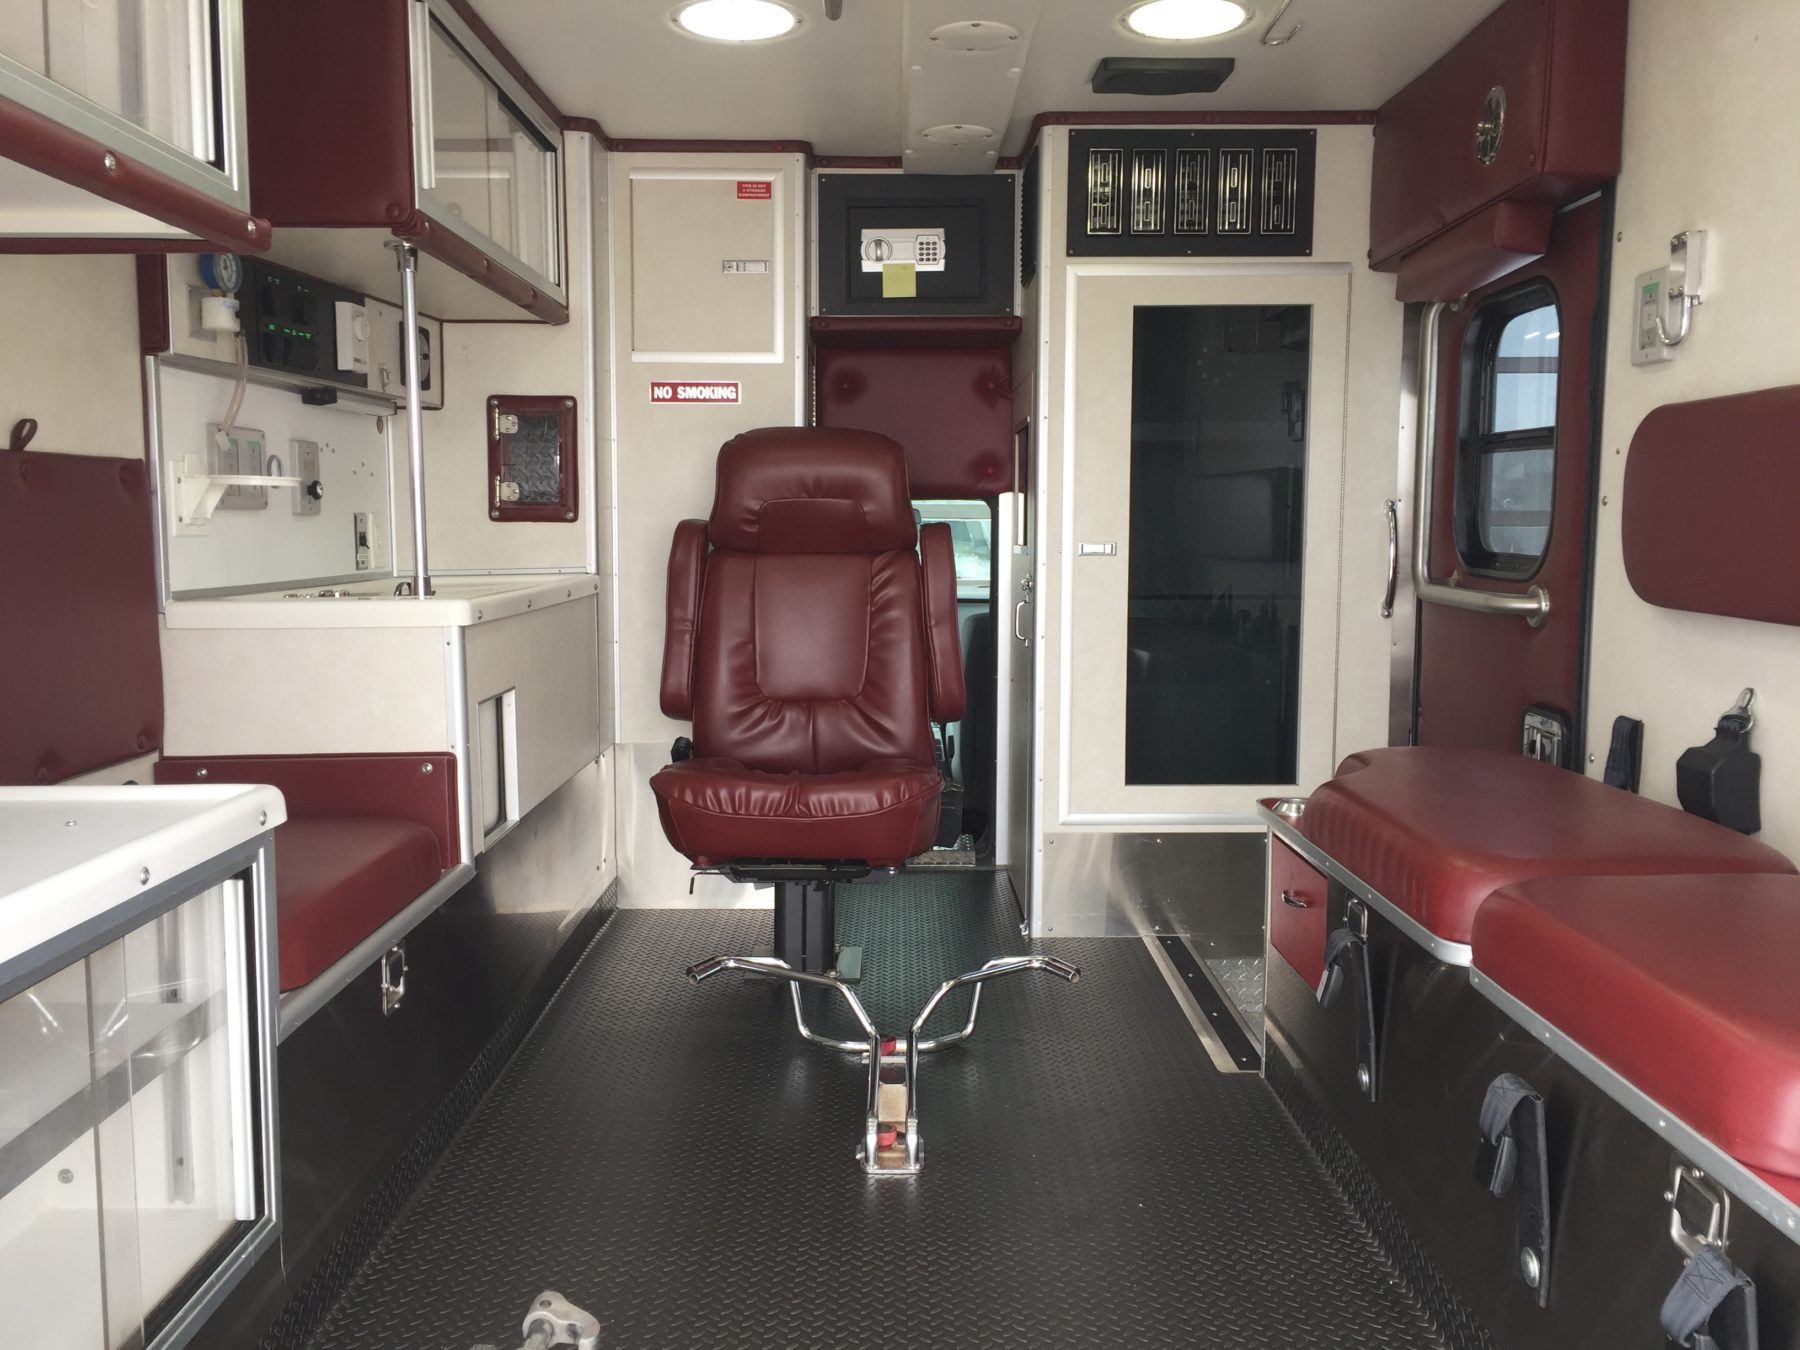 2013 Ford F350 4x4 Type 1 Ambulance For Sale – Picture 2